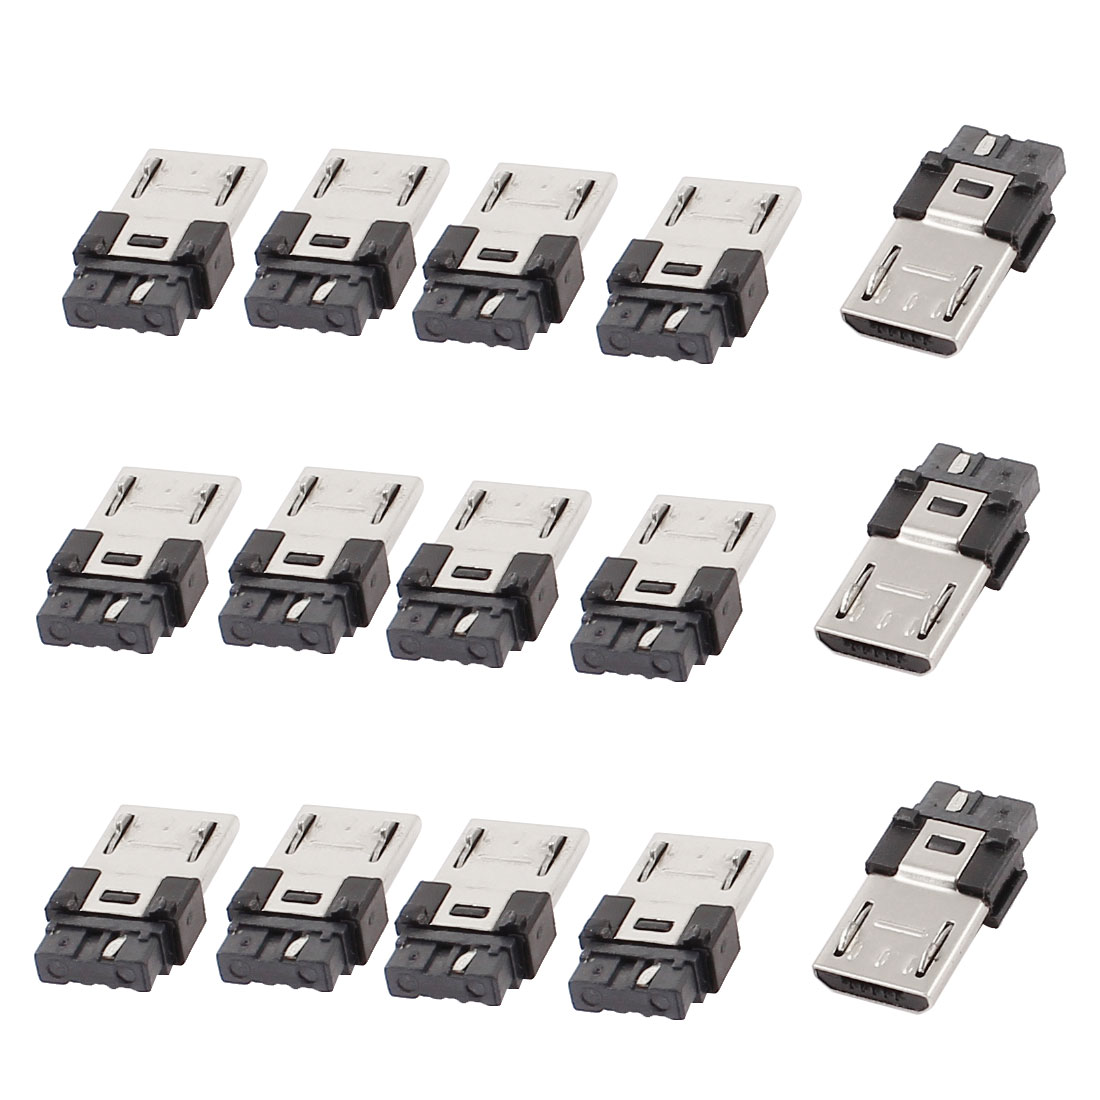 15pcs Micro USB B Type 5 Pin Male Soldering Jack Connector